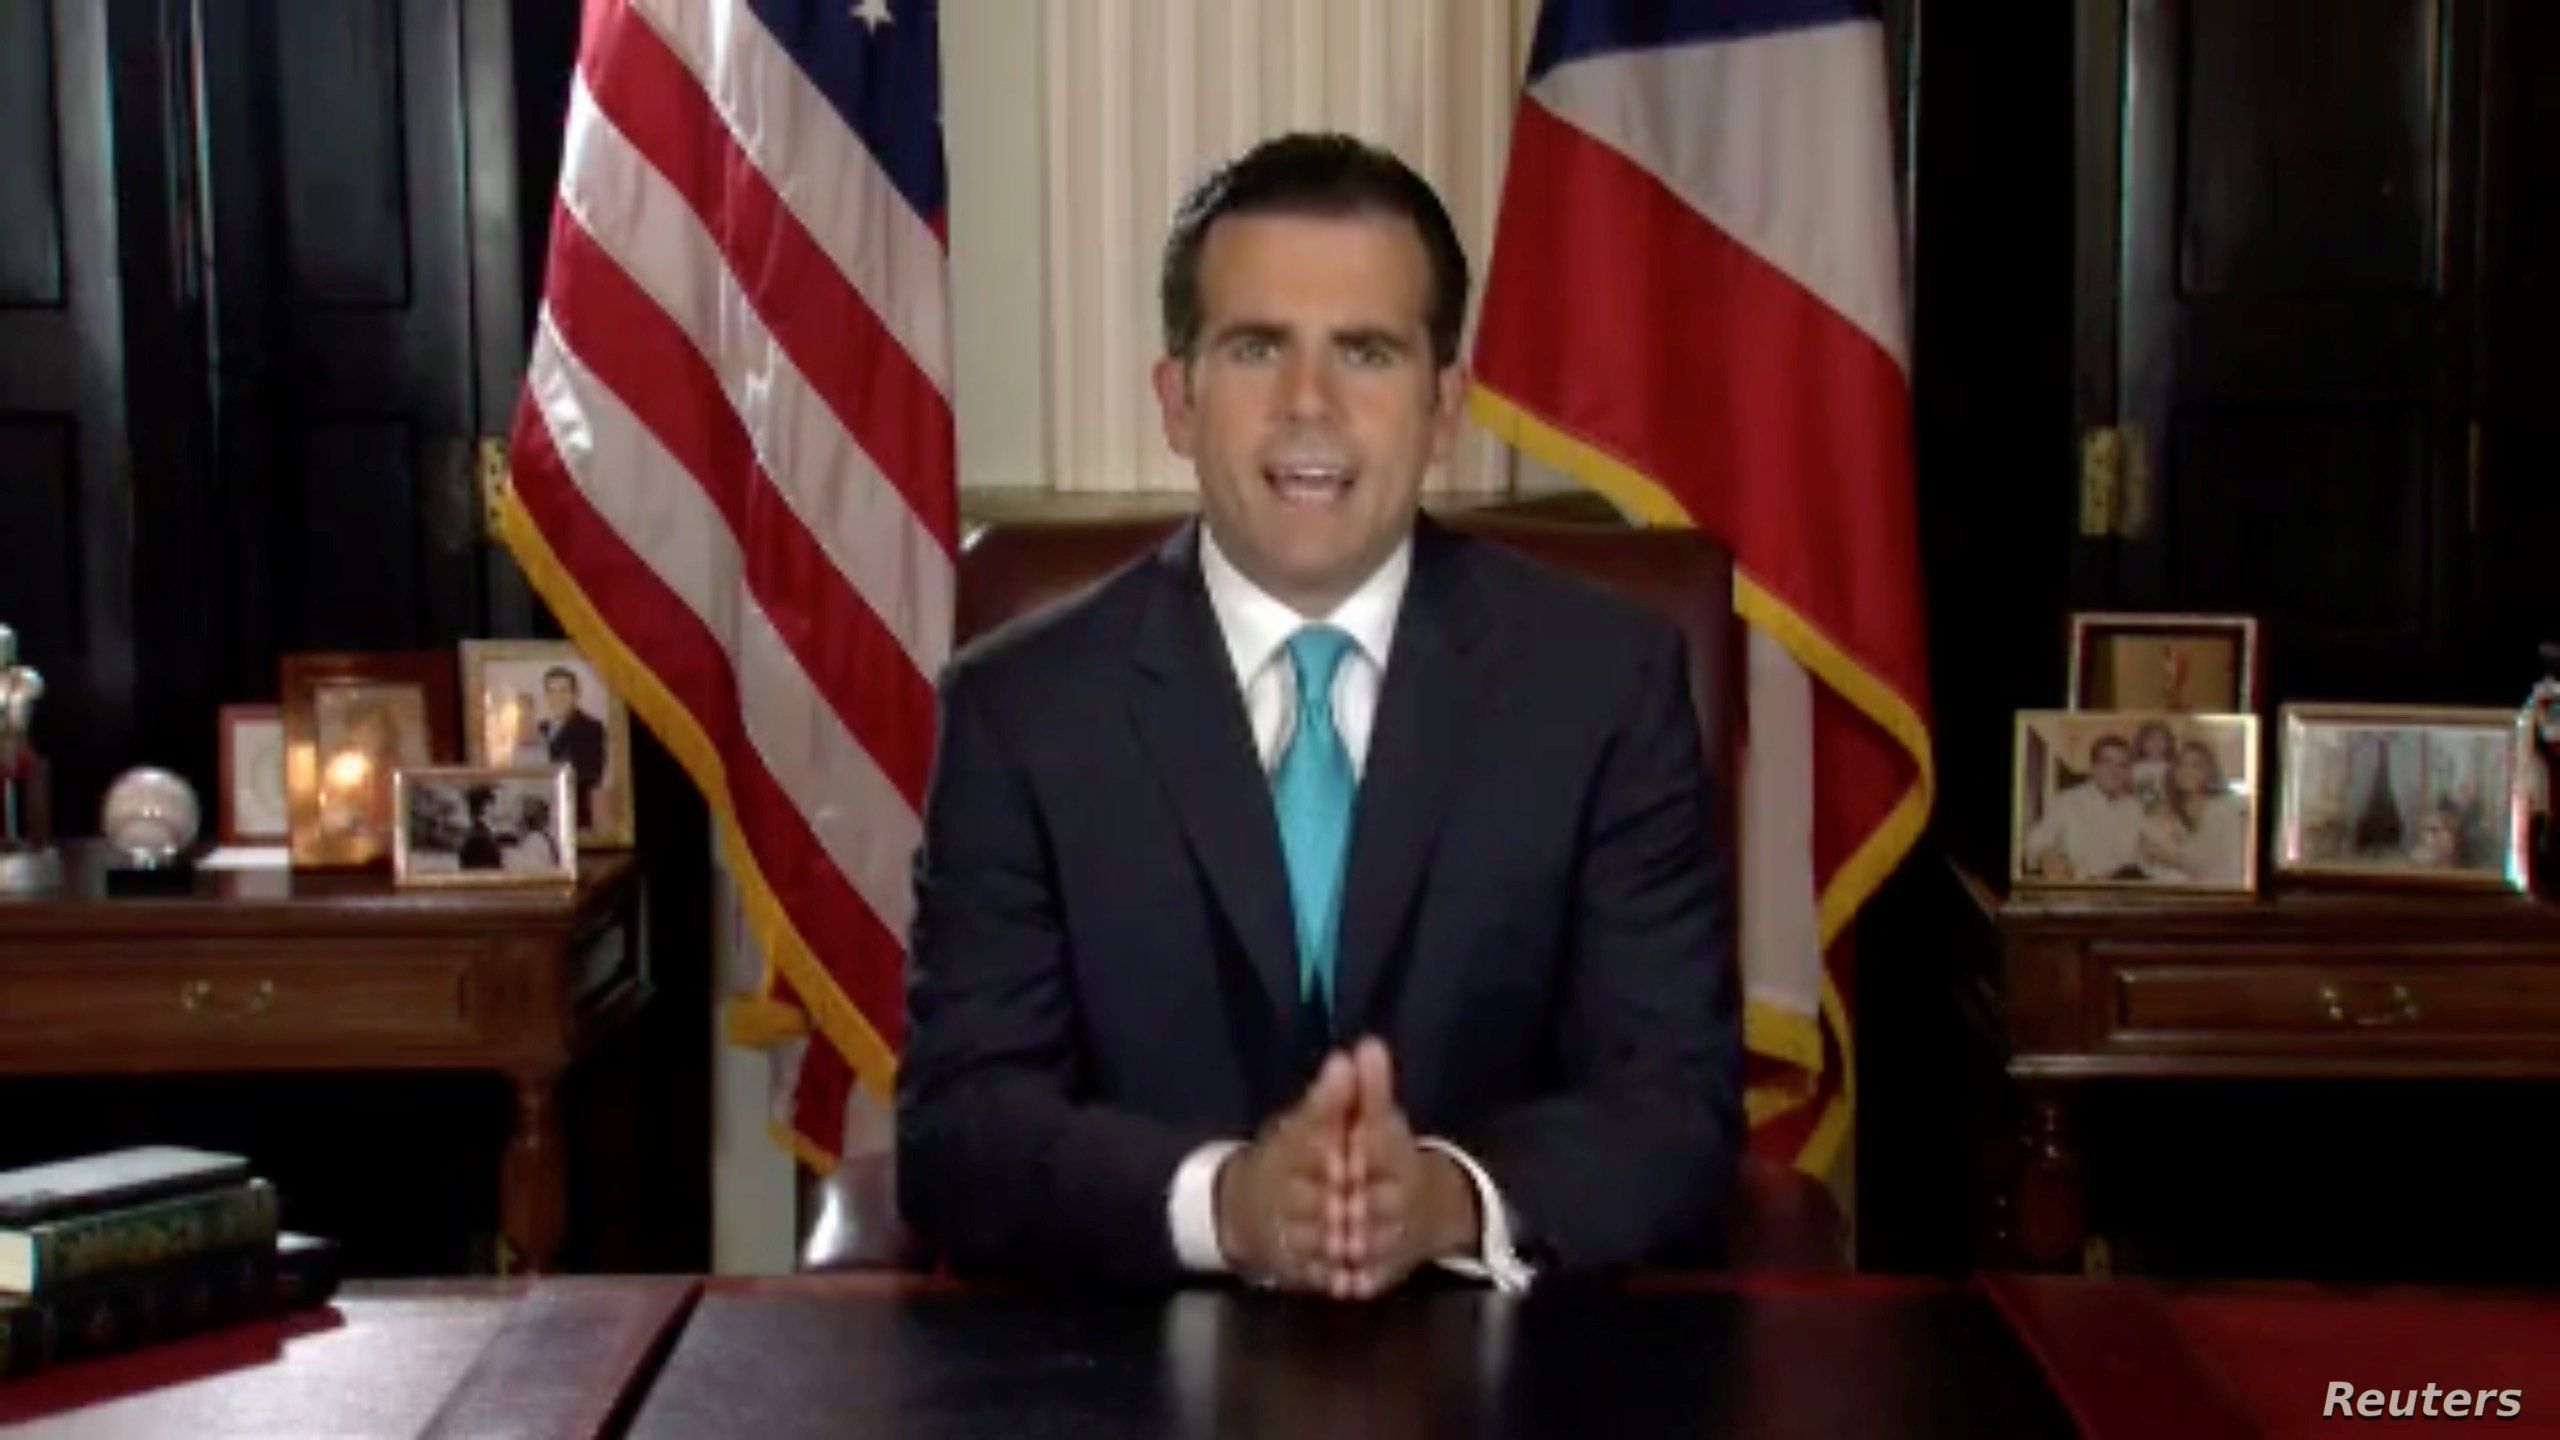 Puerto Rico Governor Ricardo Rossello speaks as he announces his resignation in San Juan, Puerto Rico, early July 25, 2019.